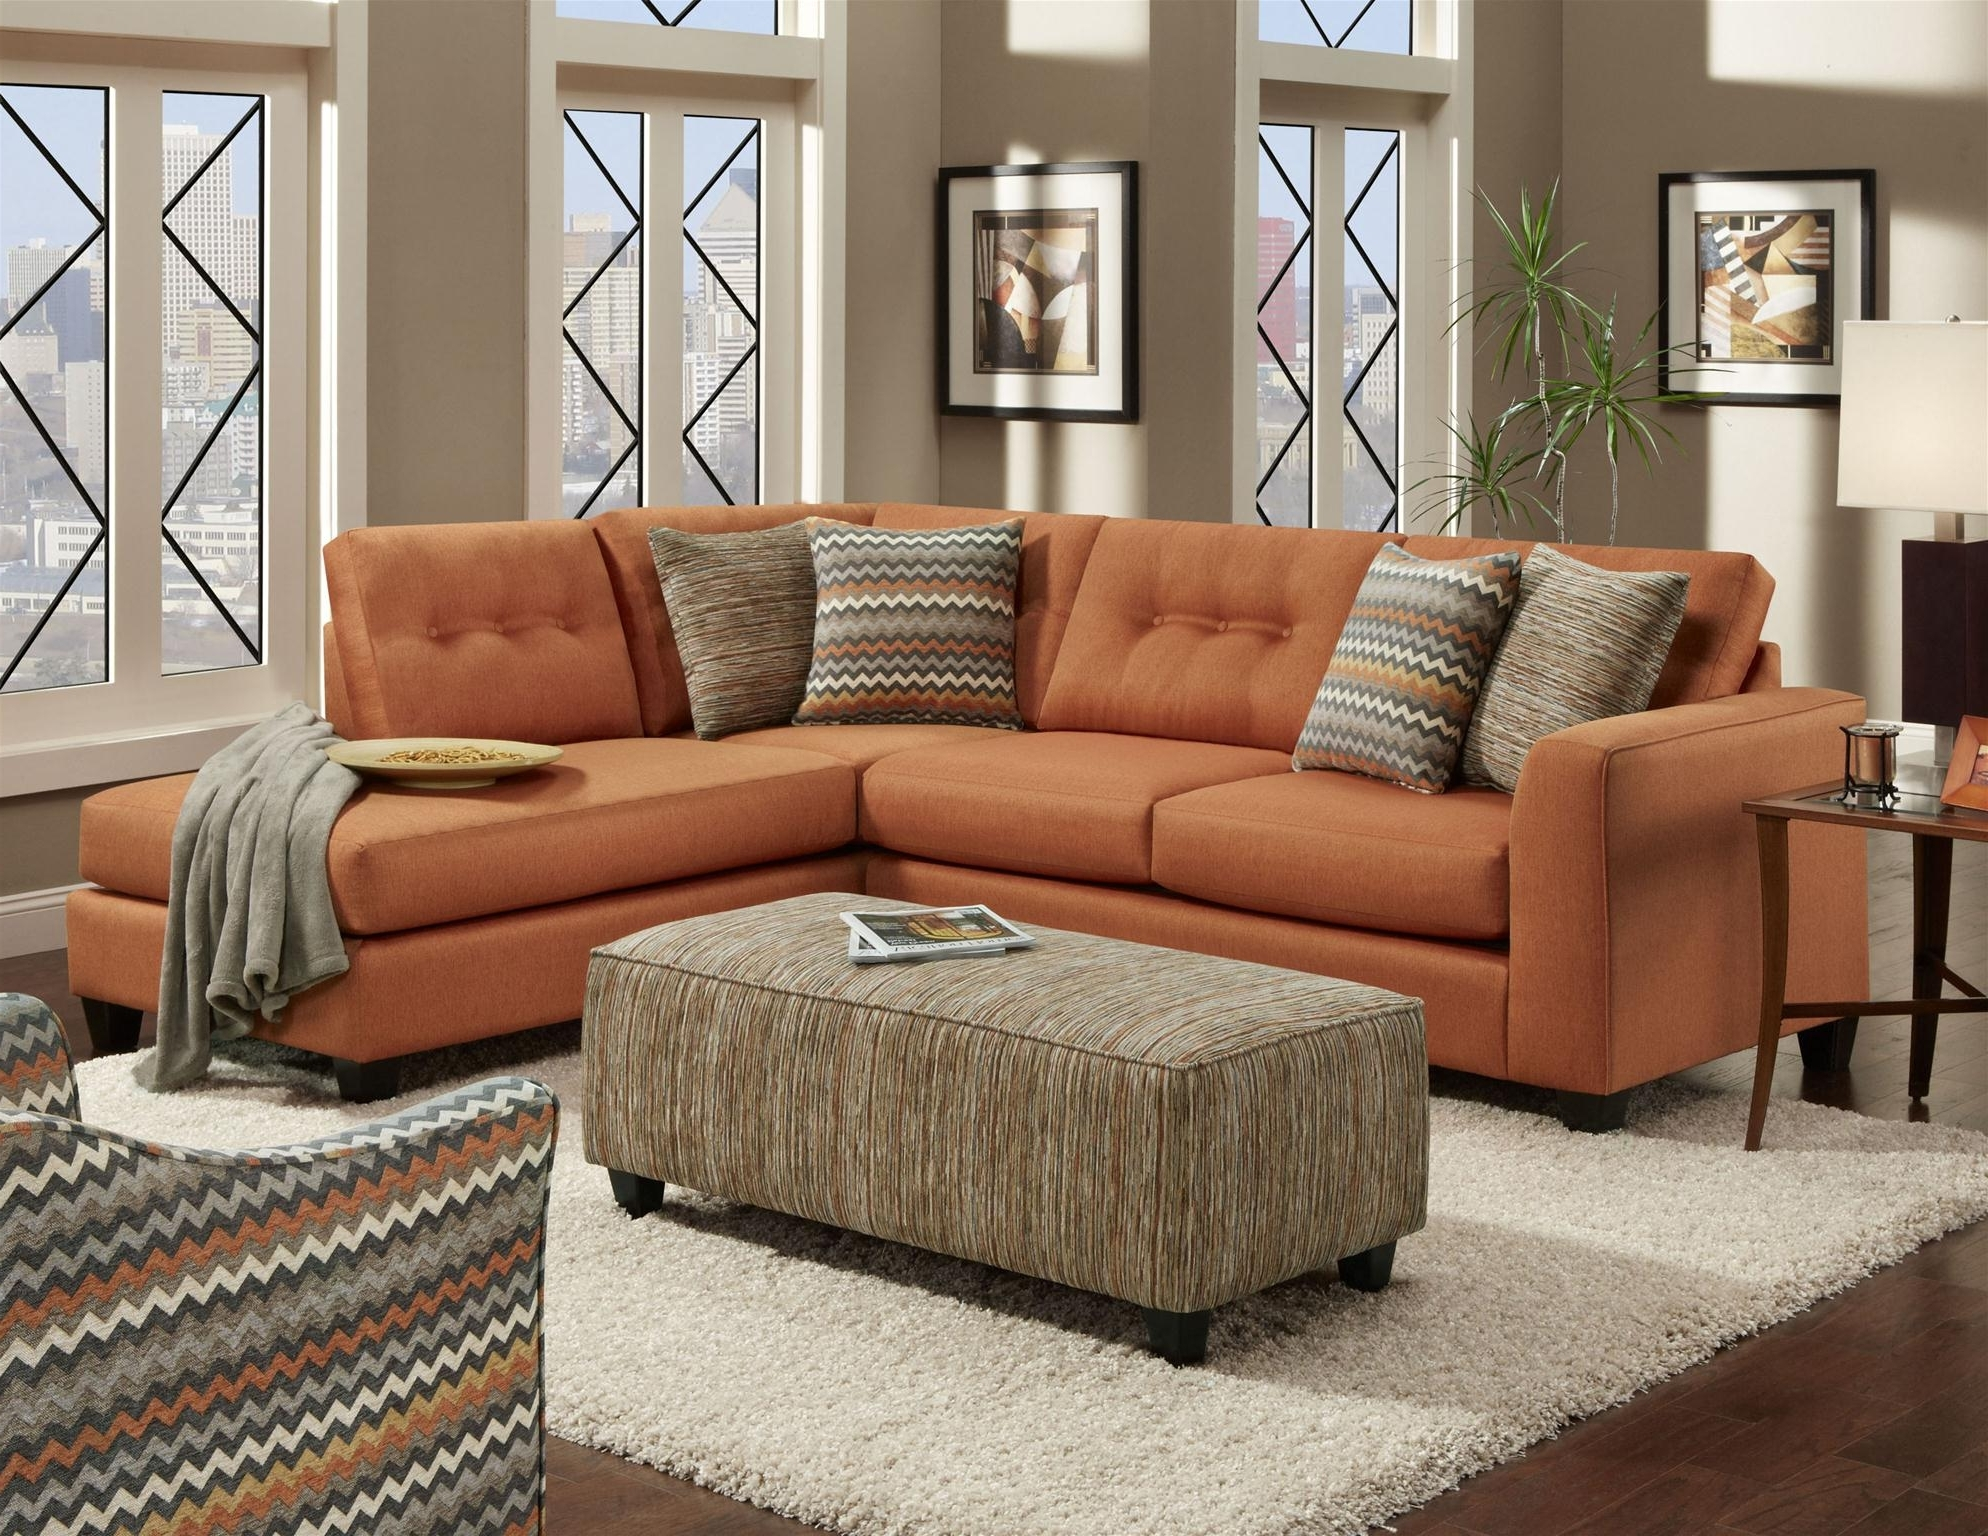 Should You Consider A Sectional? – Wg&r Furniture Throughout Most Popular Orange Sectional Sofas (View 8 of 15)